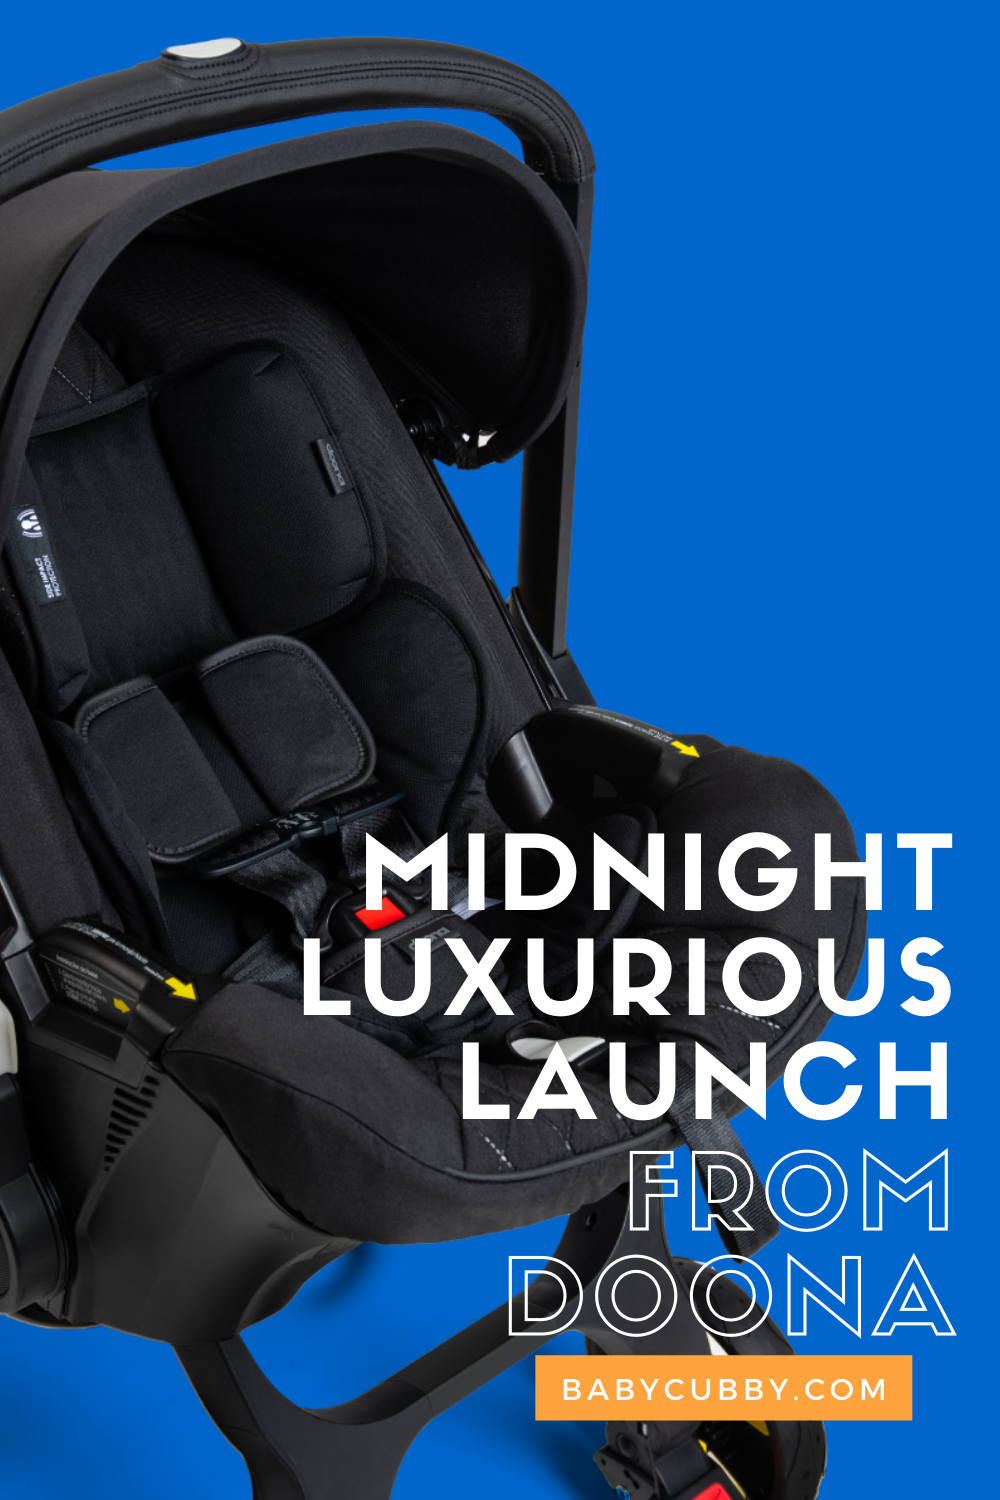 Midnight Luxurious Launch from Doona The Baby Cubby